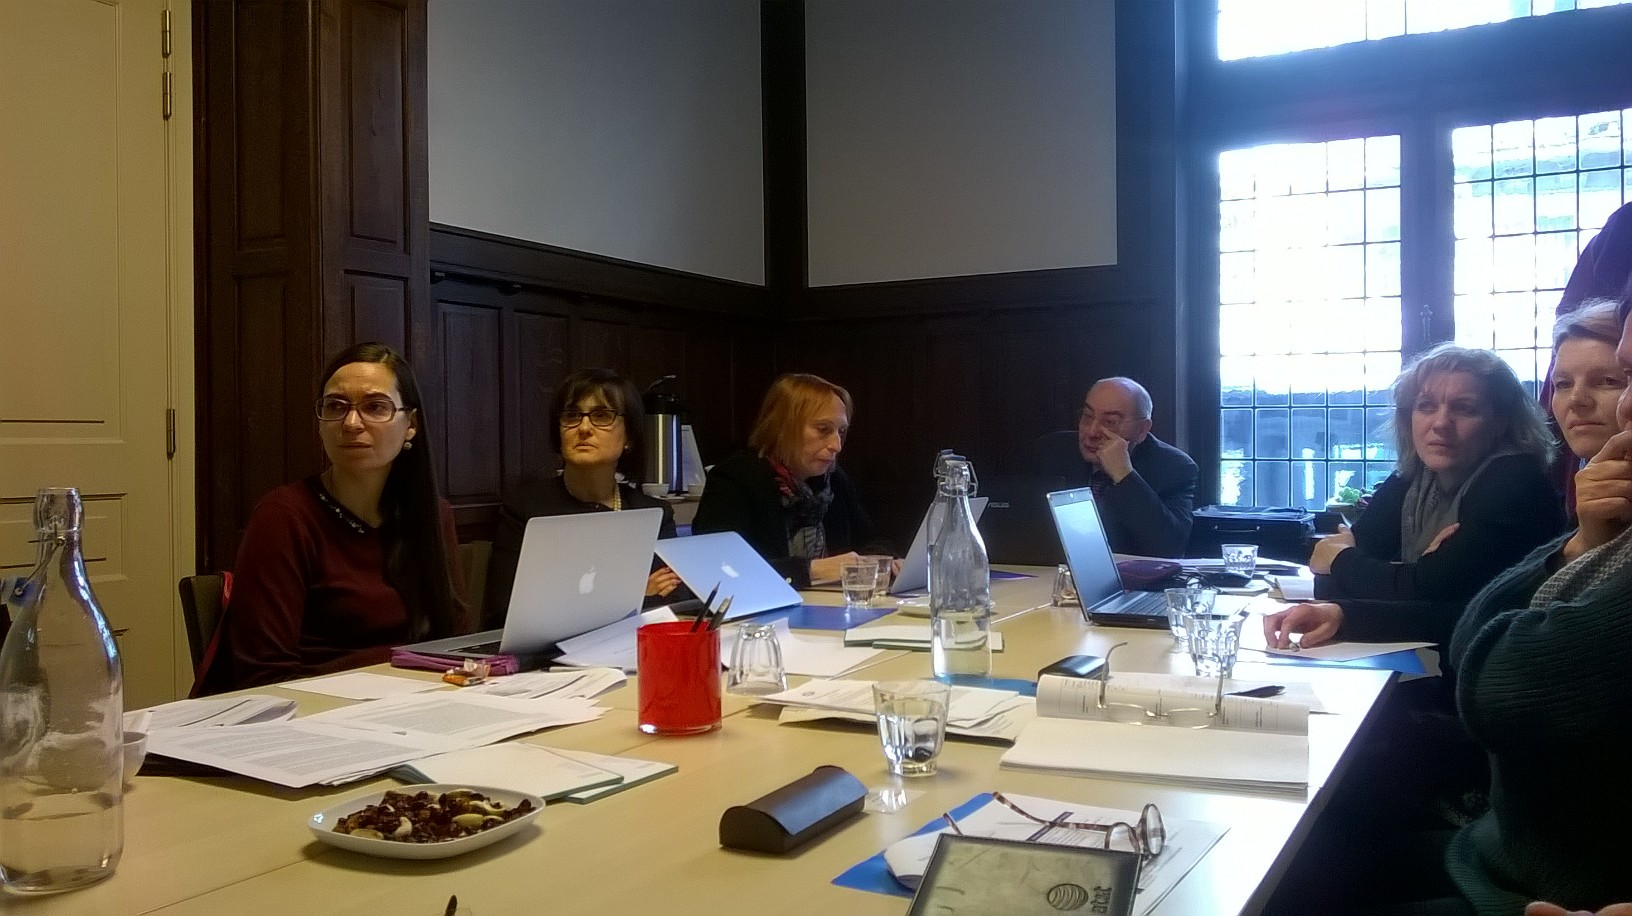 Ad hoc meeting foto 1 11.03.2016 2 Brussels Meeting Pro Copy